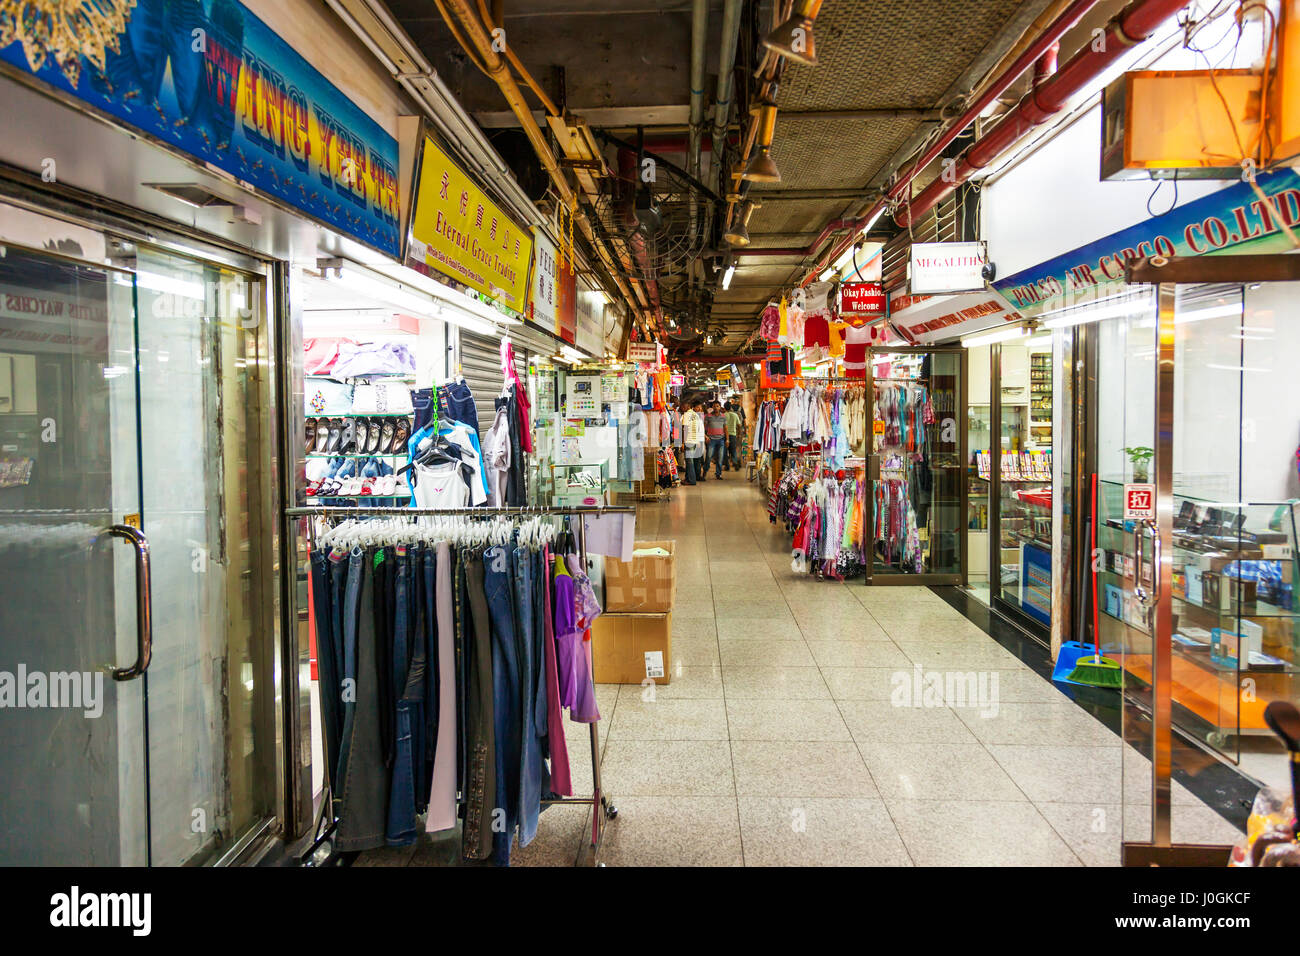 inside chungking mansions chungking mansions is a building located at stock photo 138049423 alamy. Black Bedroom Furniture Sets. Home Design Ideas